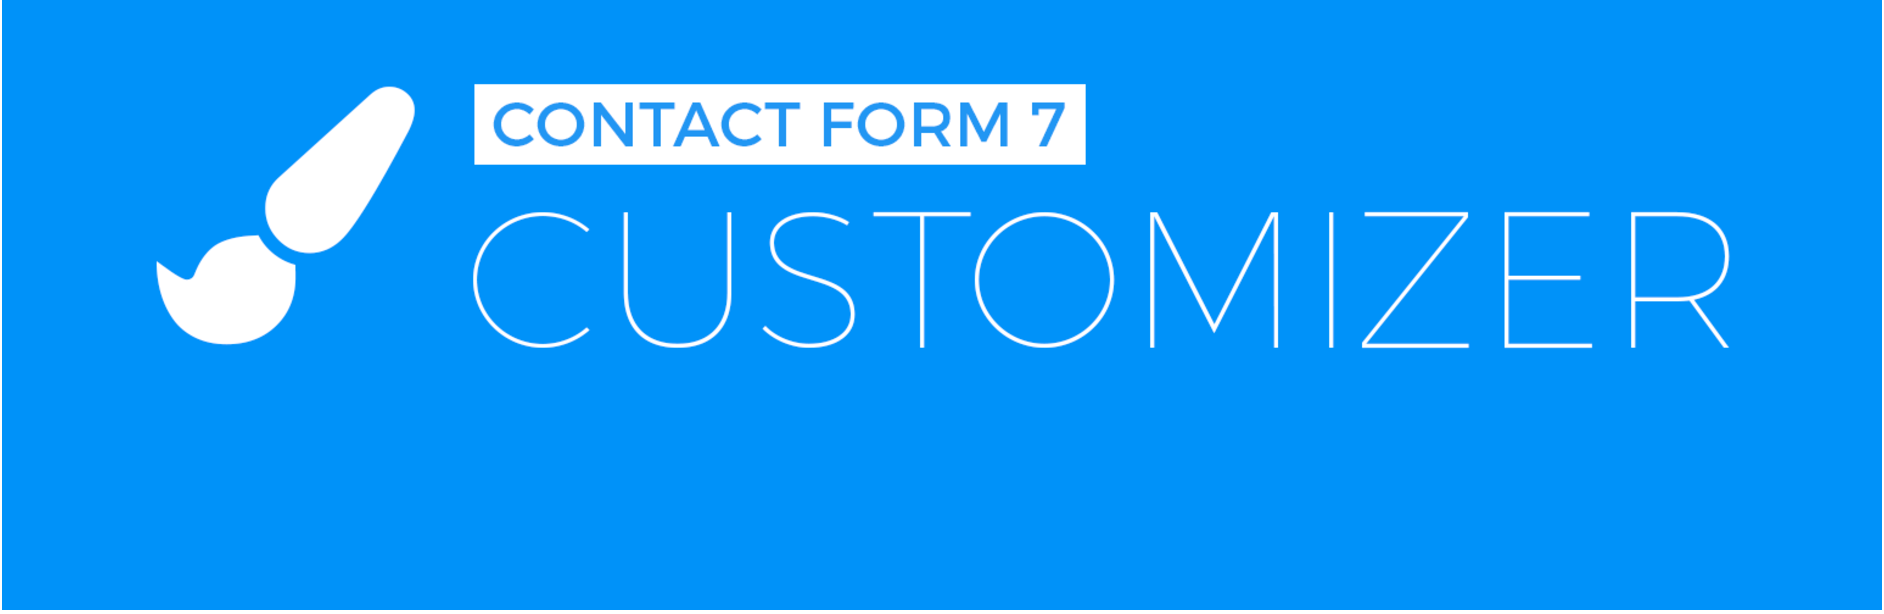 Rebrand Your Contact Form 7 Forms With WordPress Form Customizer in Under 5 Minutes 1  Extensive Reviews